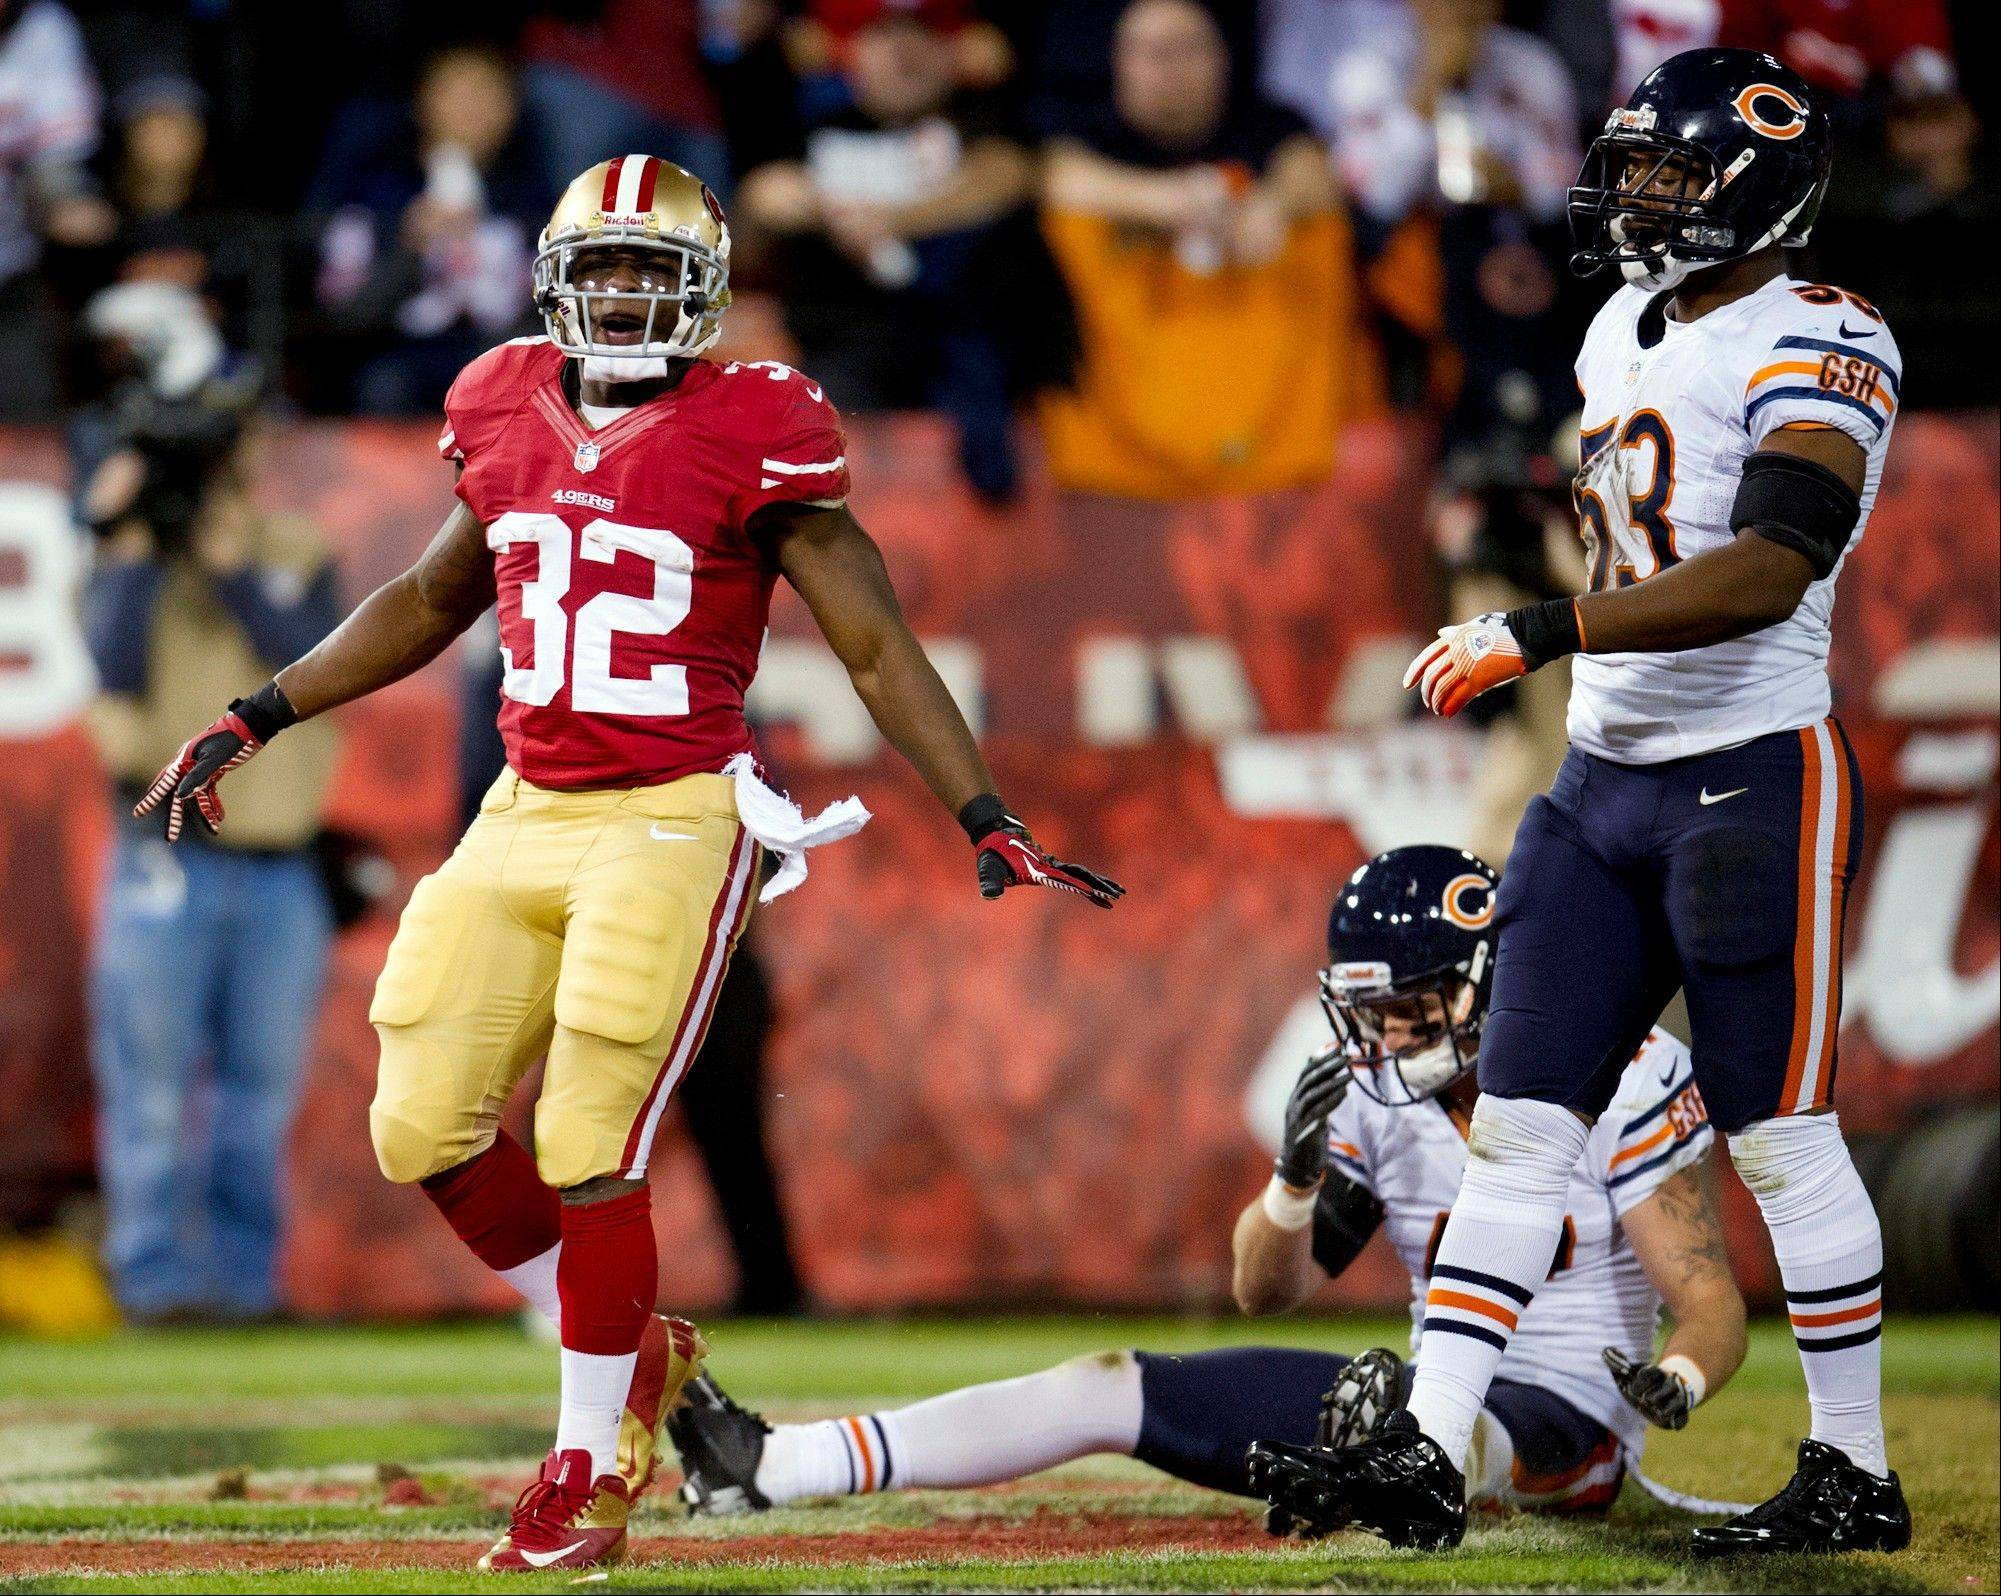 San Francisco 49ers running back Kendall Hunter celebrates his touchdown against the Chicago Bears during the second quarter.